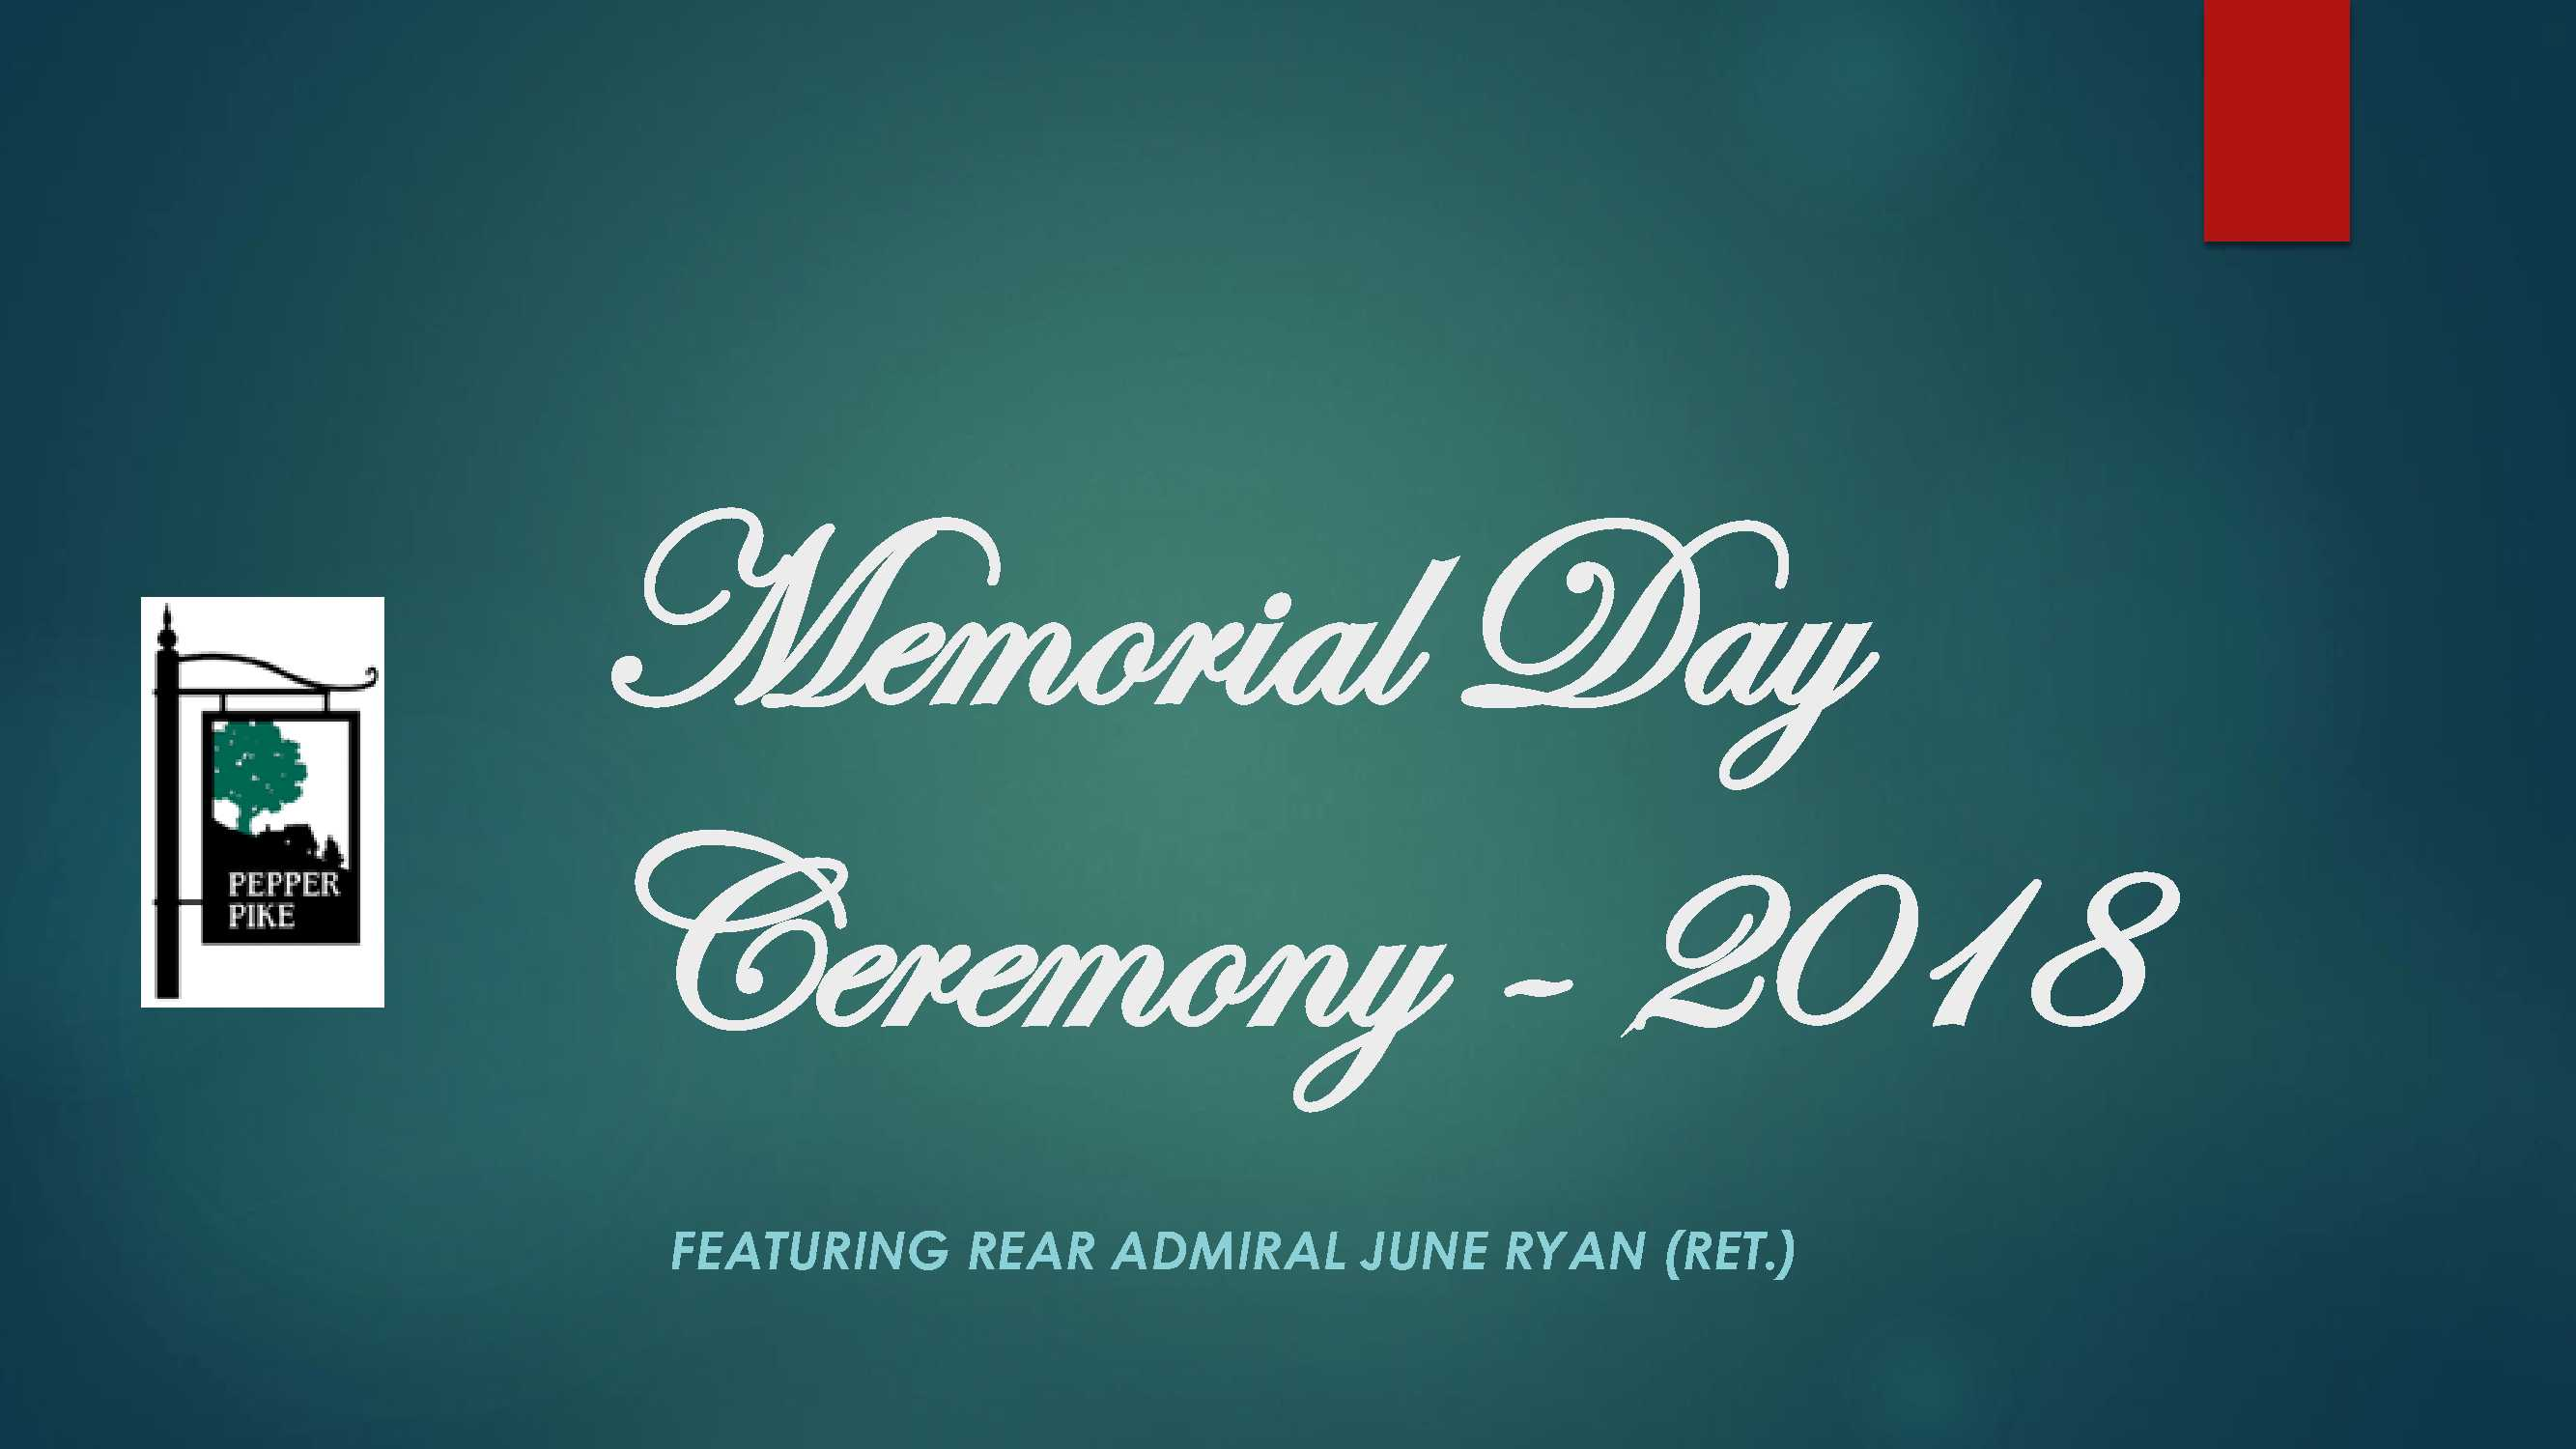 2018 MEMORIAL DAY CEREMONY CITY OF PEPPER PIKE_1